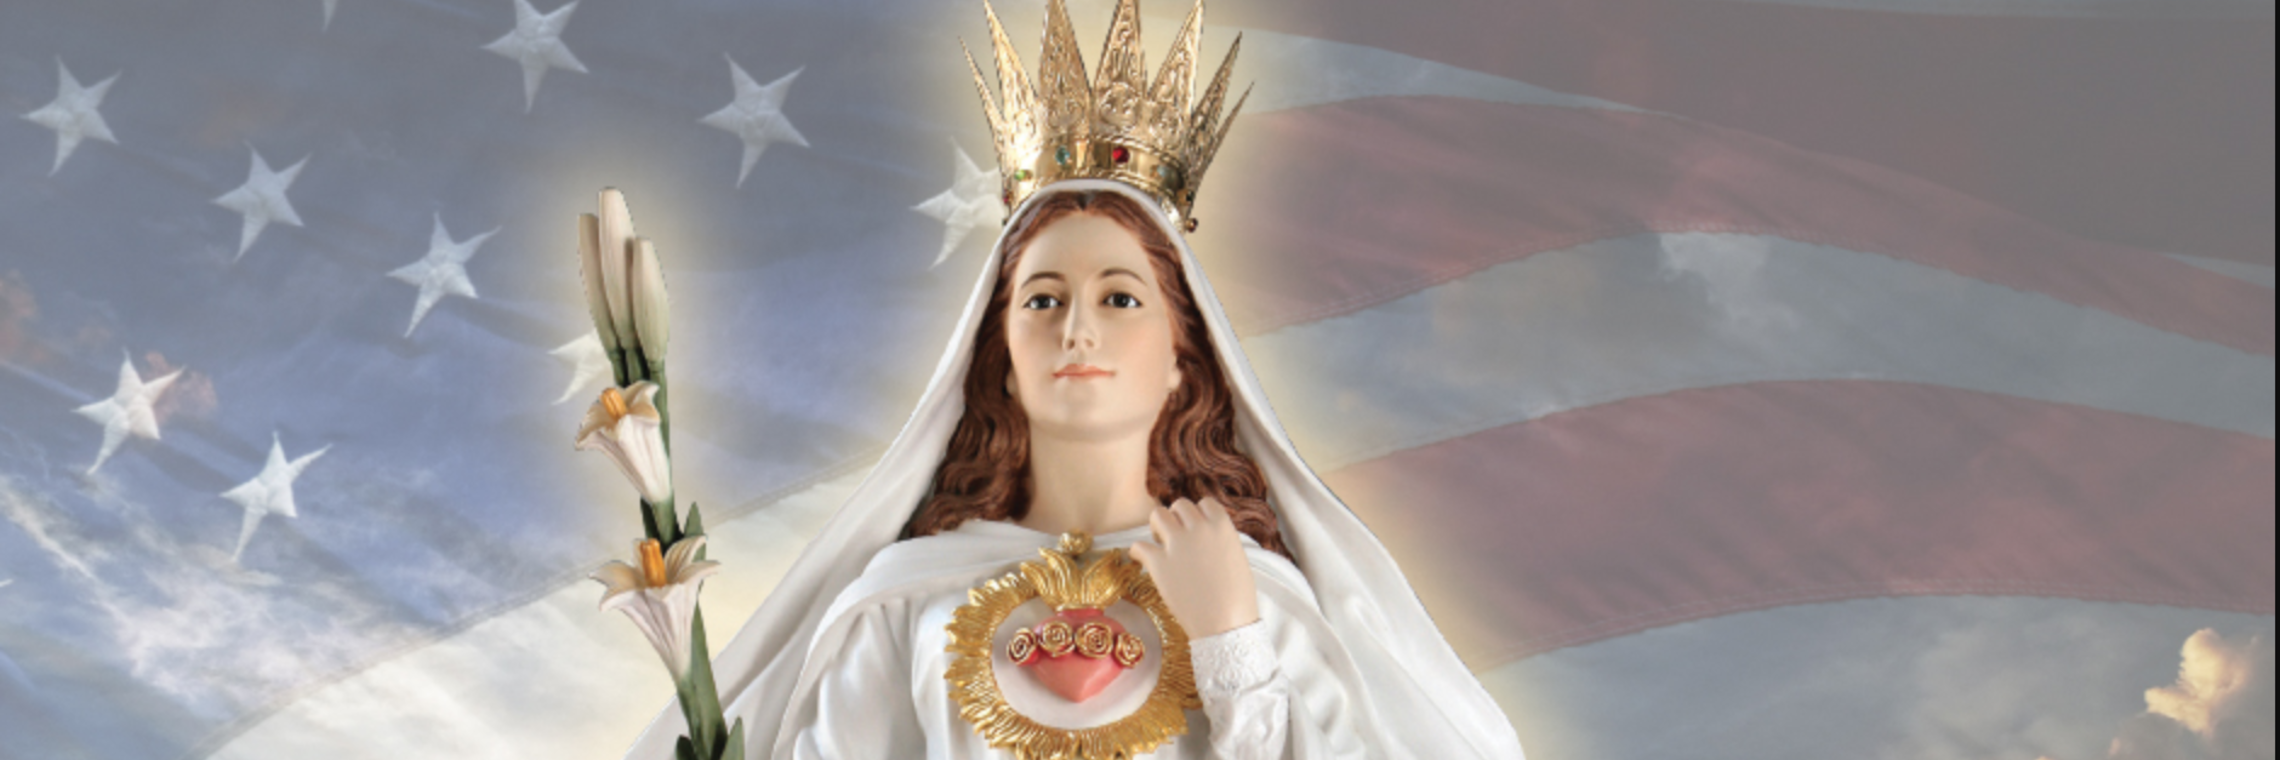 Our Lady of America Image